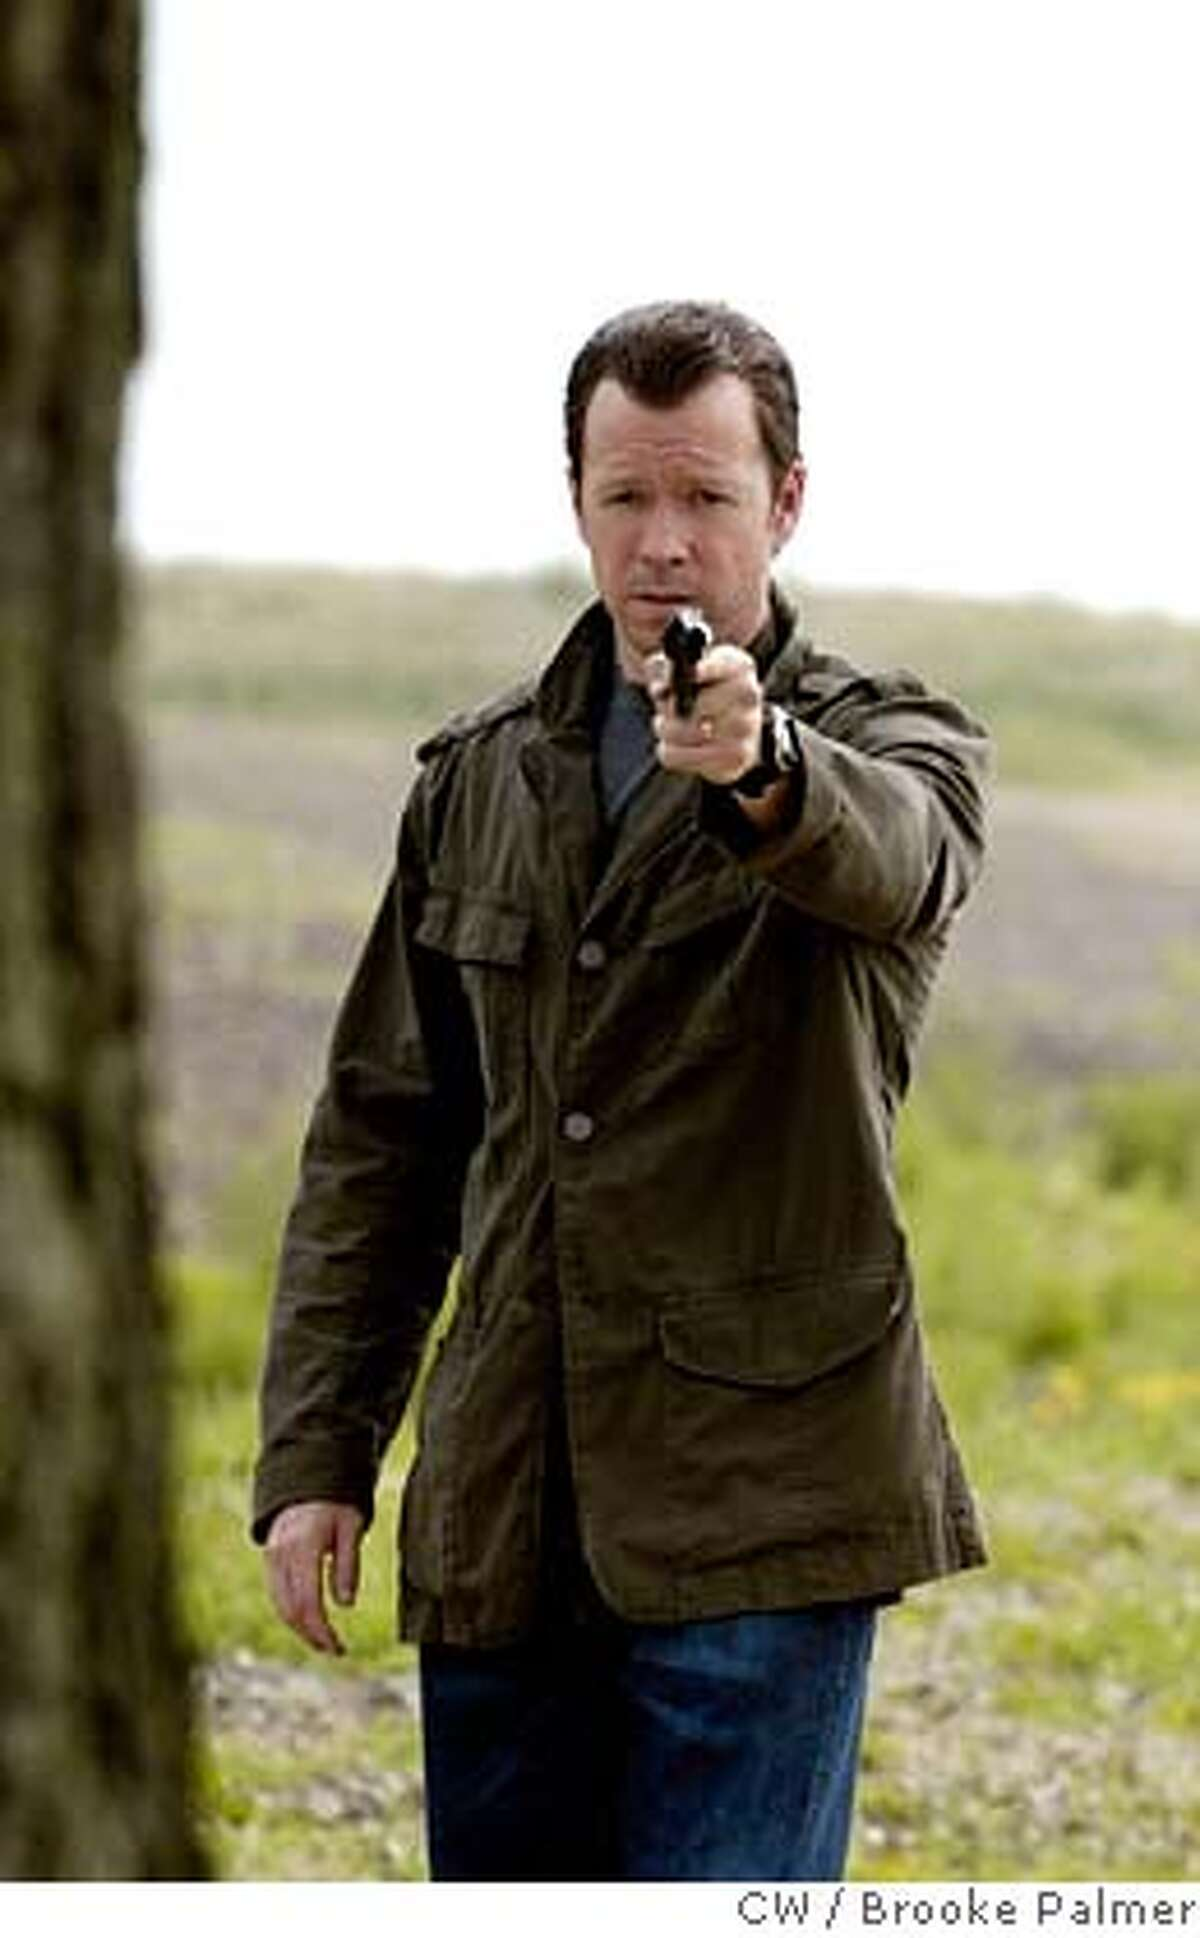 This 2006 photo, provided by The CW, shows actor Donnie Wahlberg as Paul Rader in a scene from the new network's dramatic series